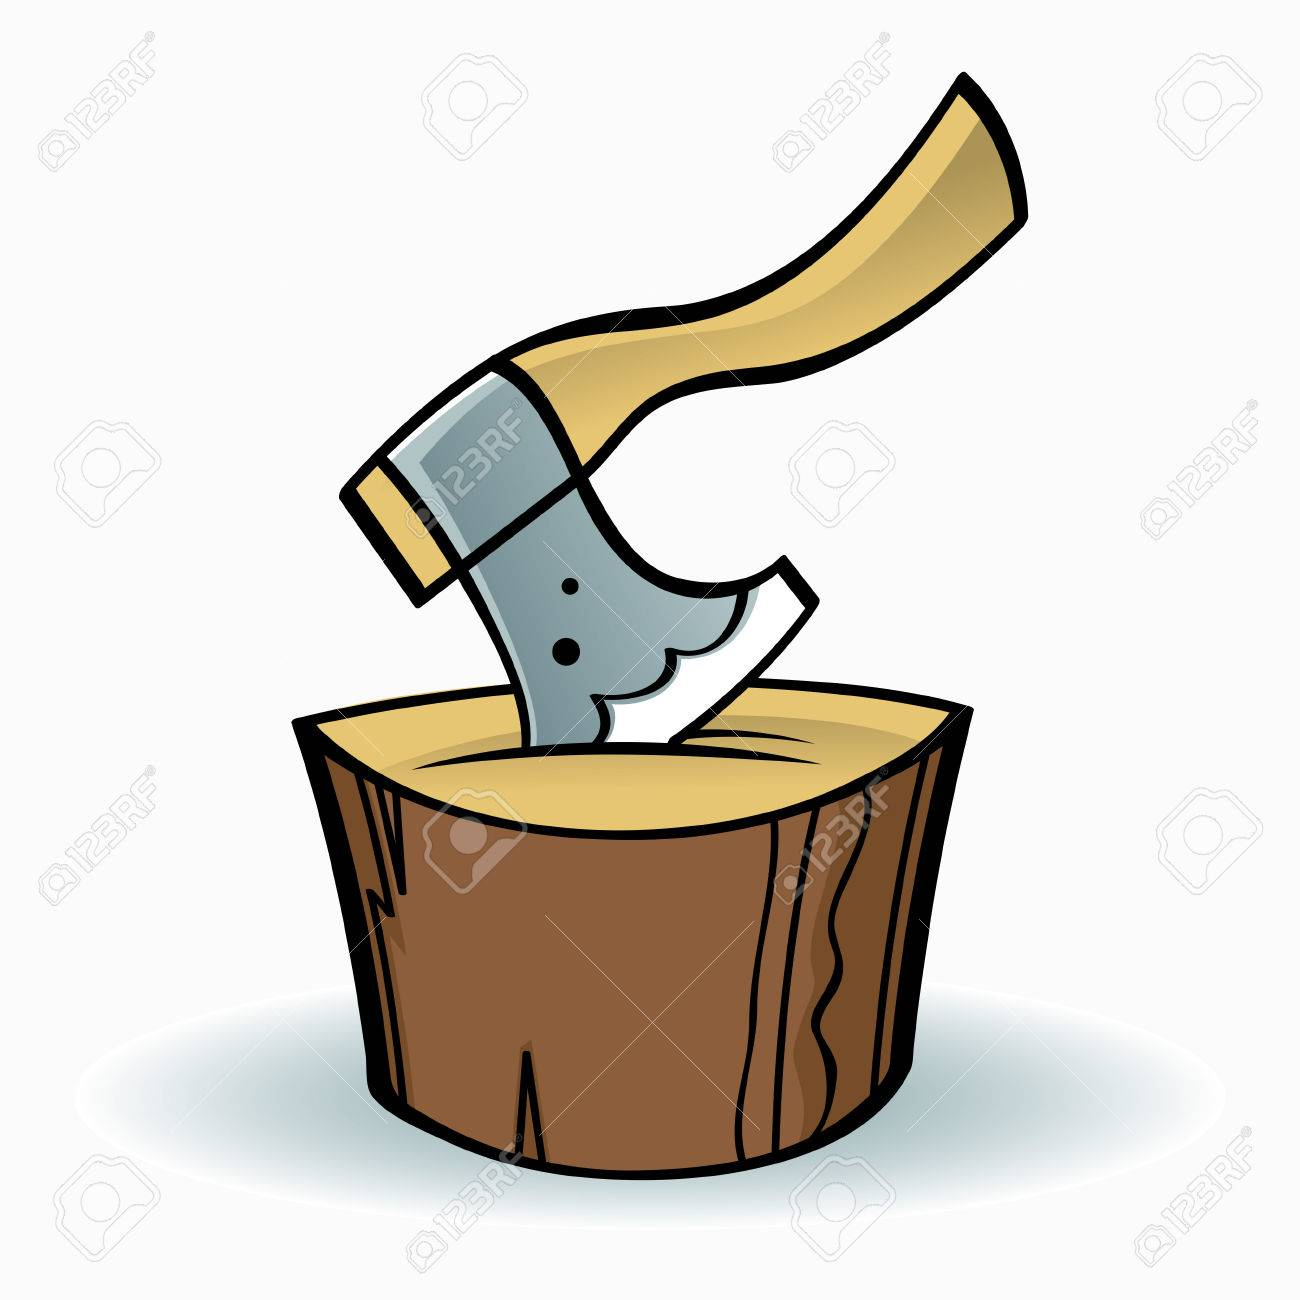 Ax clipart chop wood. Cliparts x making the